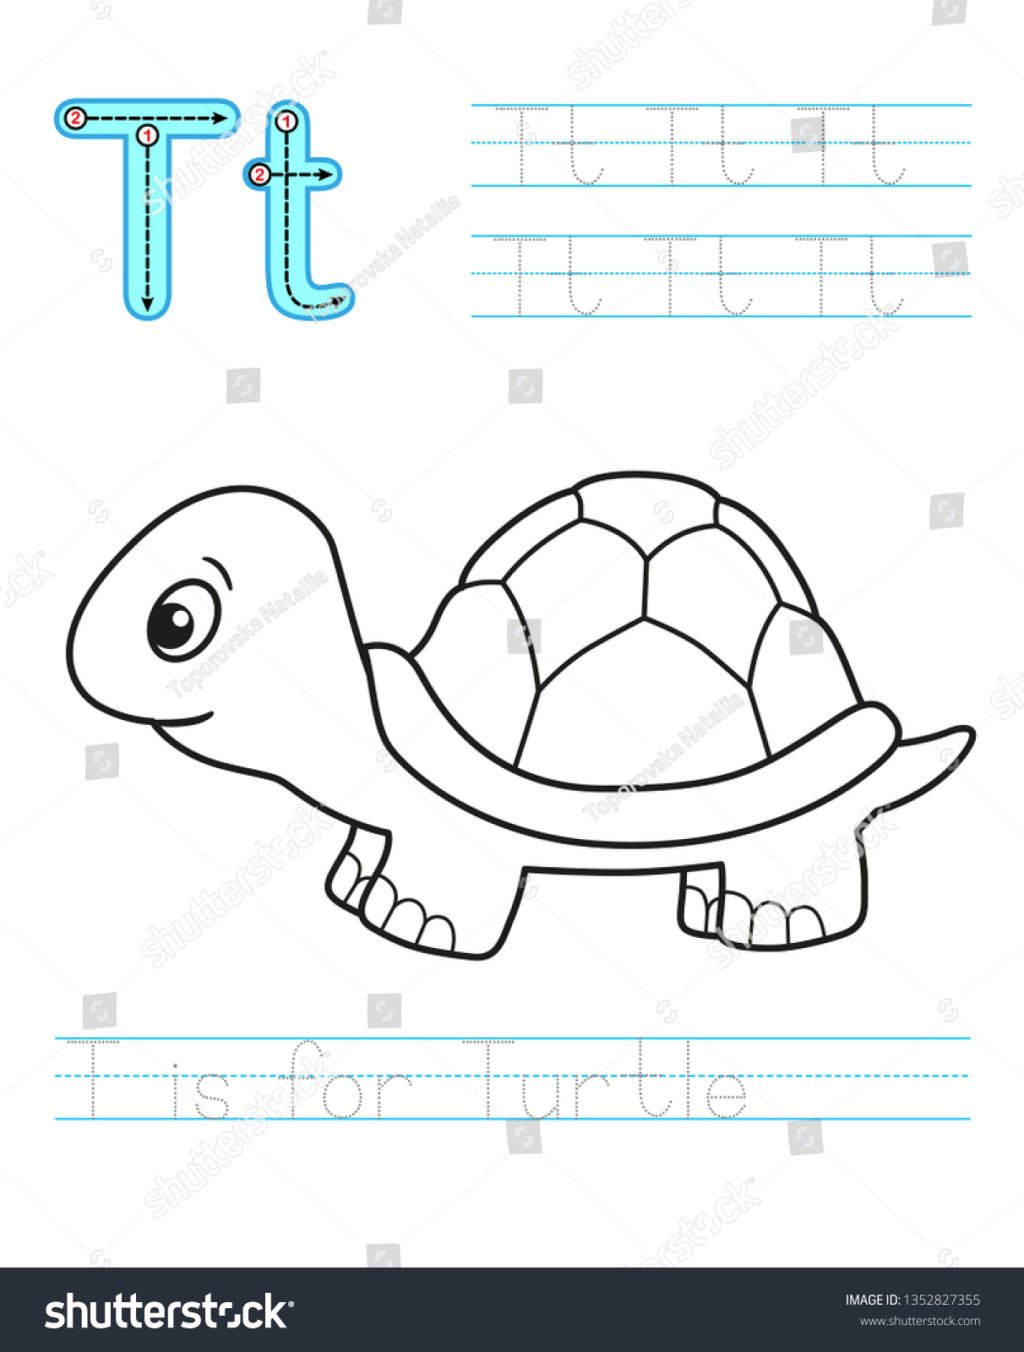 Reptiles Worksheets for Kindergarten Math Worksheet Incredible Printable Activityheets for